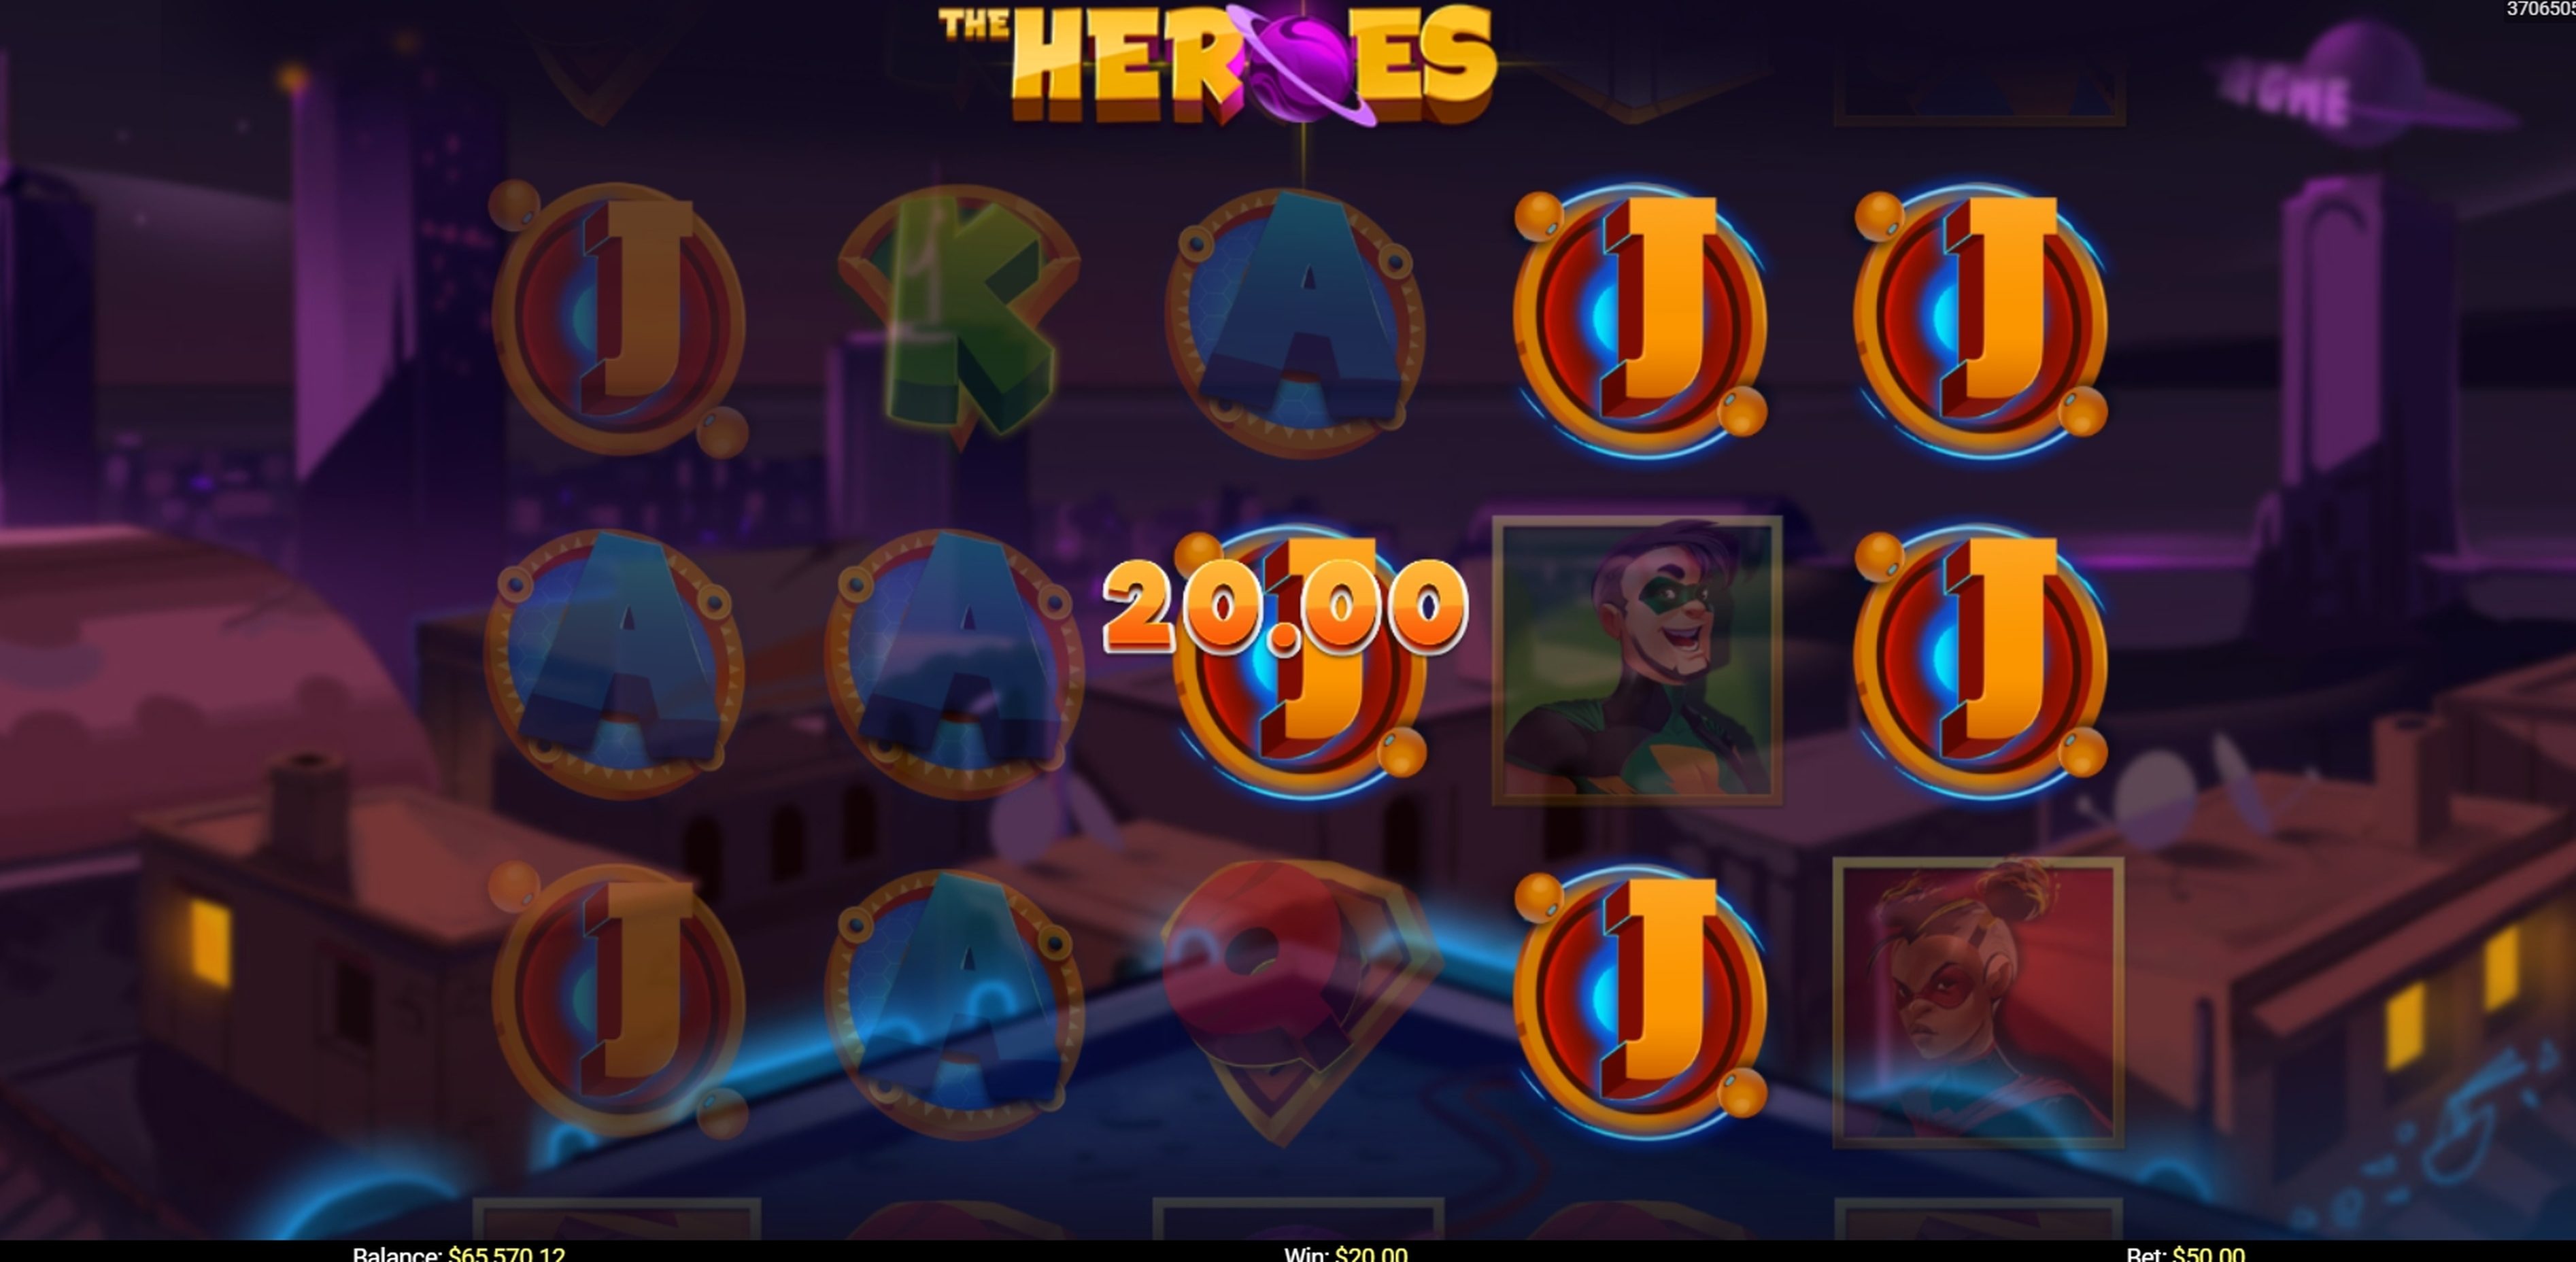 Win Money in The Heroes Free Slot Game by Mobilots